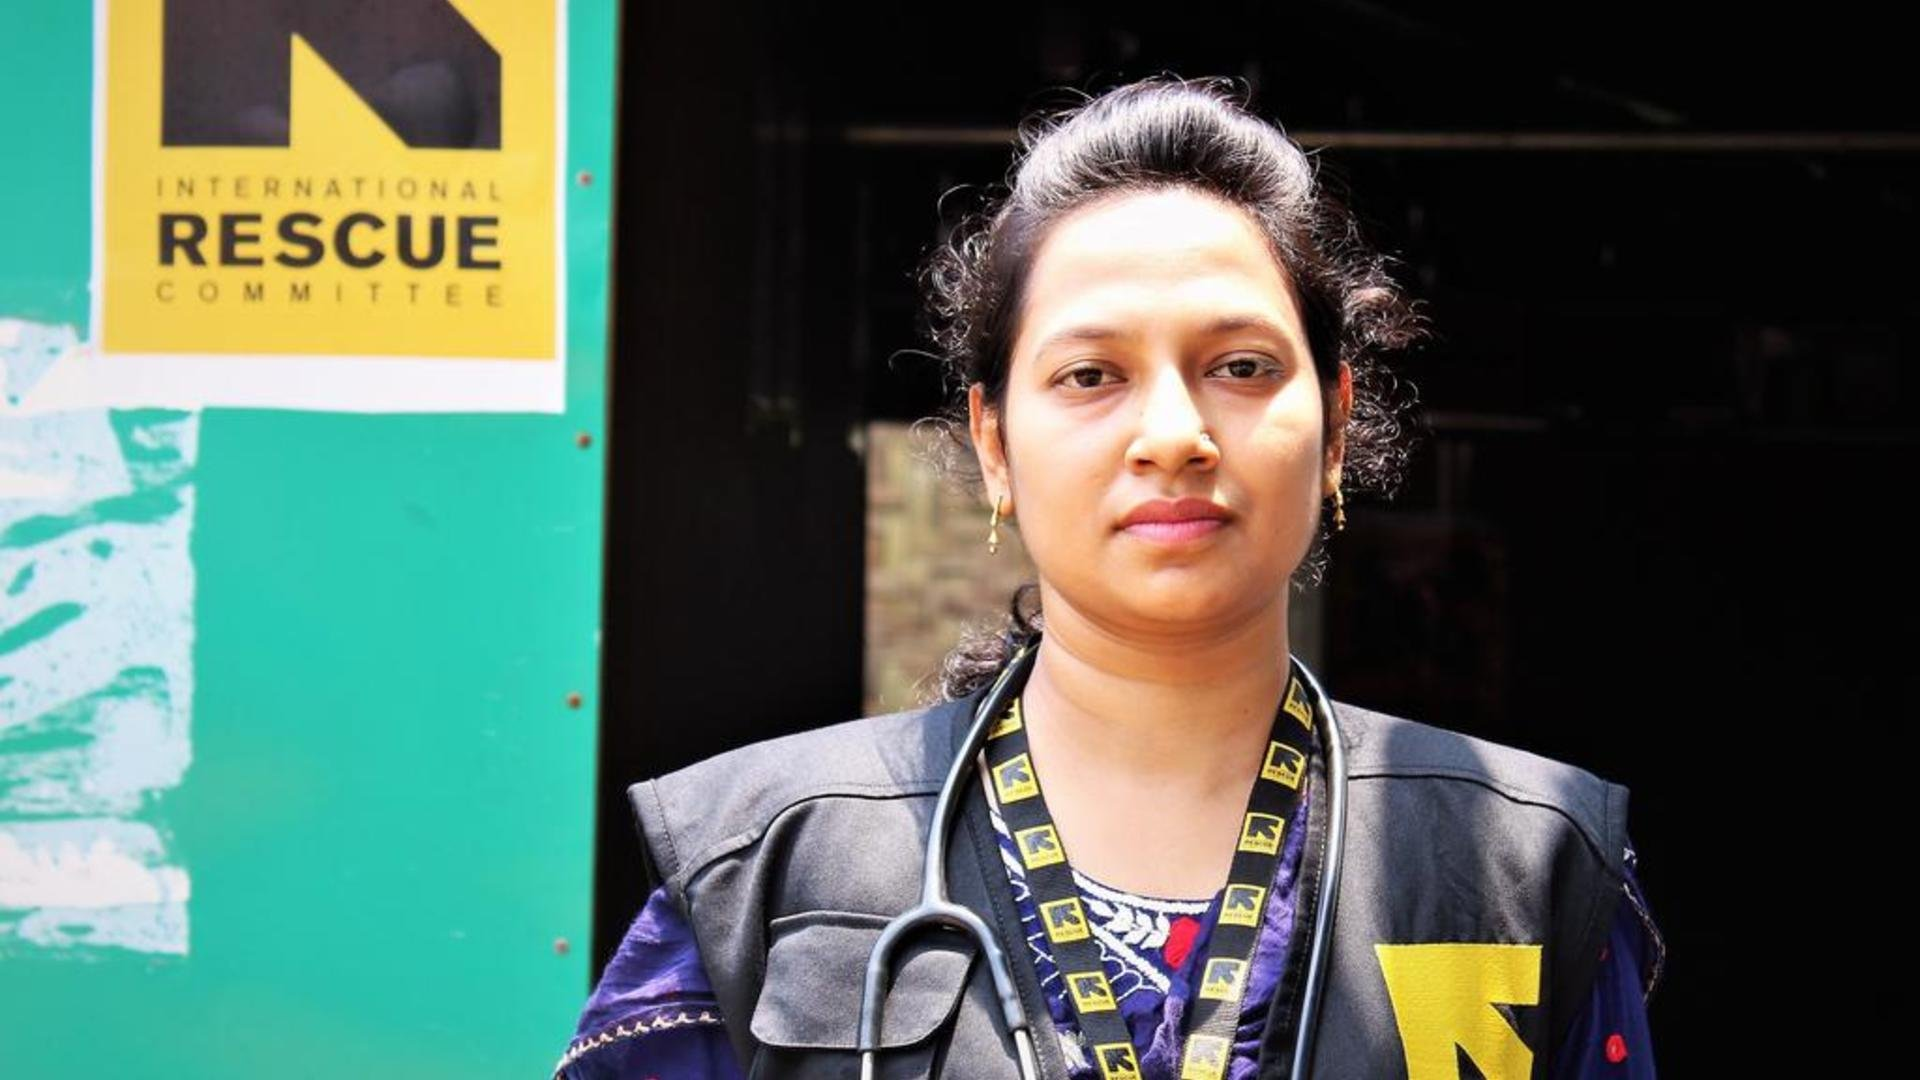 Kaniz Fatema works for the IRC as a midwife in Cox's Bazar